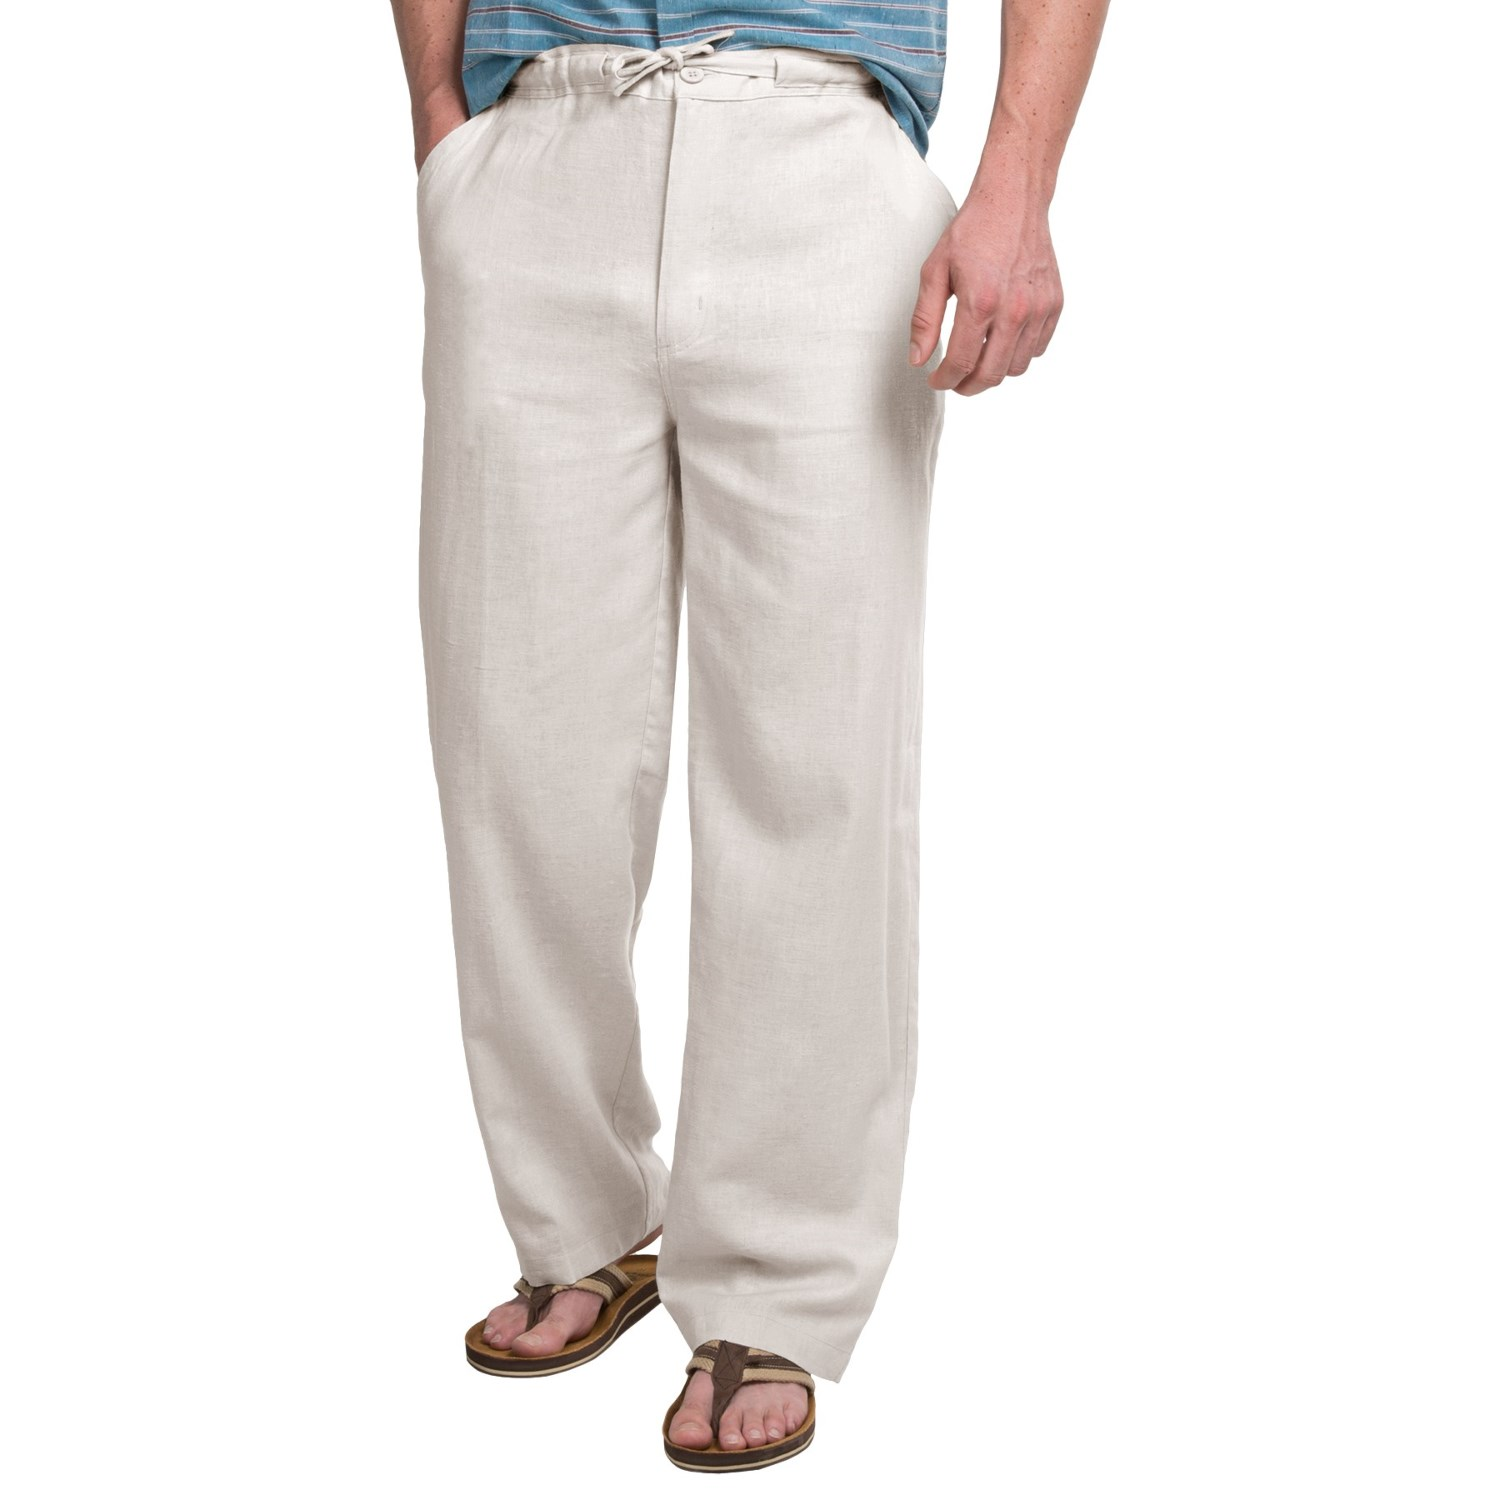 Shop the Collection of men's launge pants for Men Online at distrib-u5b2od.ga FREE SHIPPING AVAILABLE!